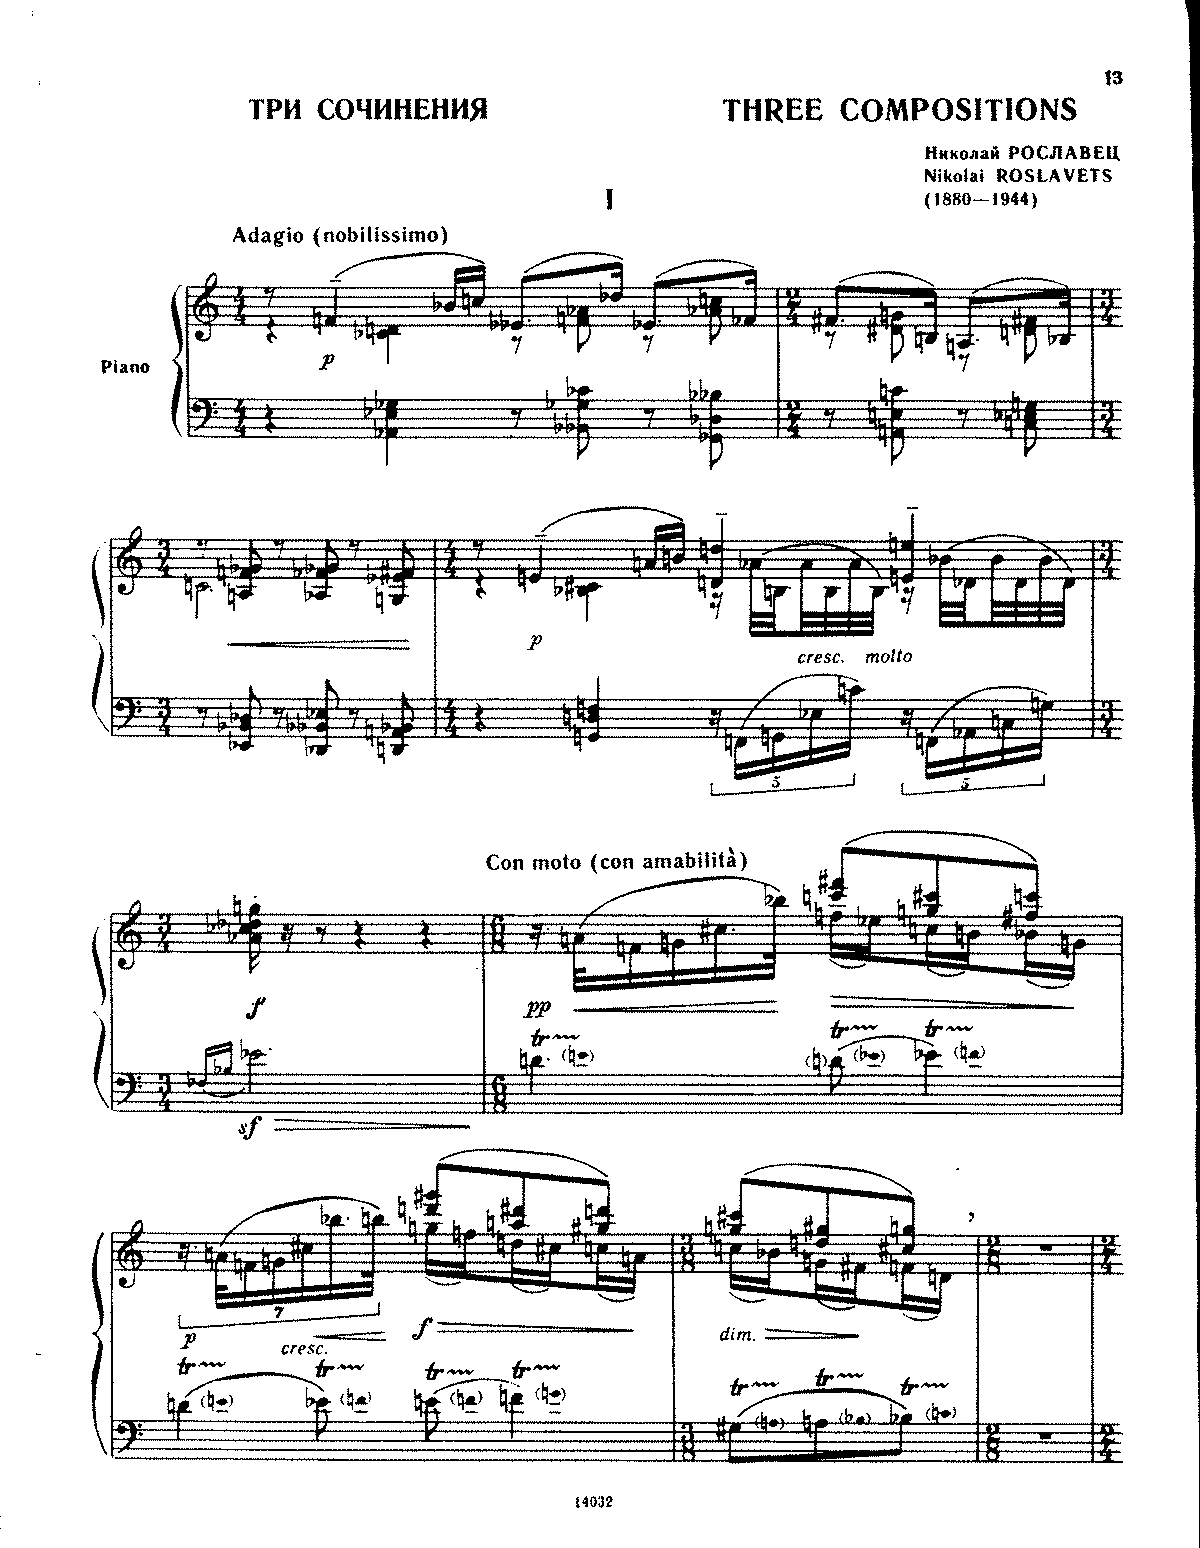 PMLP302894-Roslavets (1914) Three Compositions.pdf